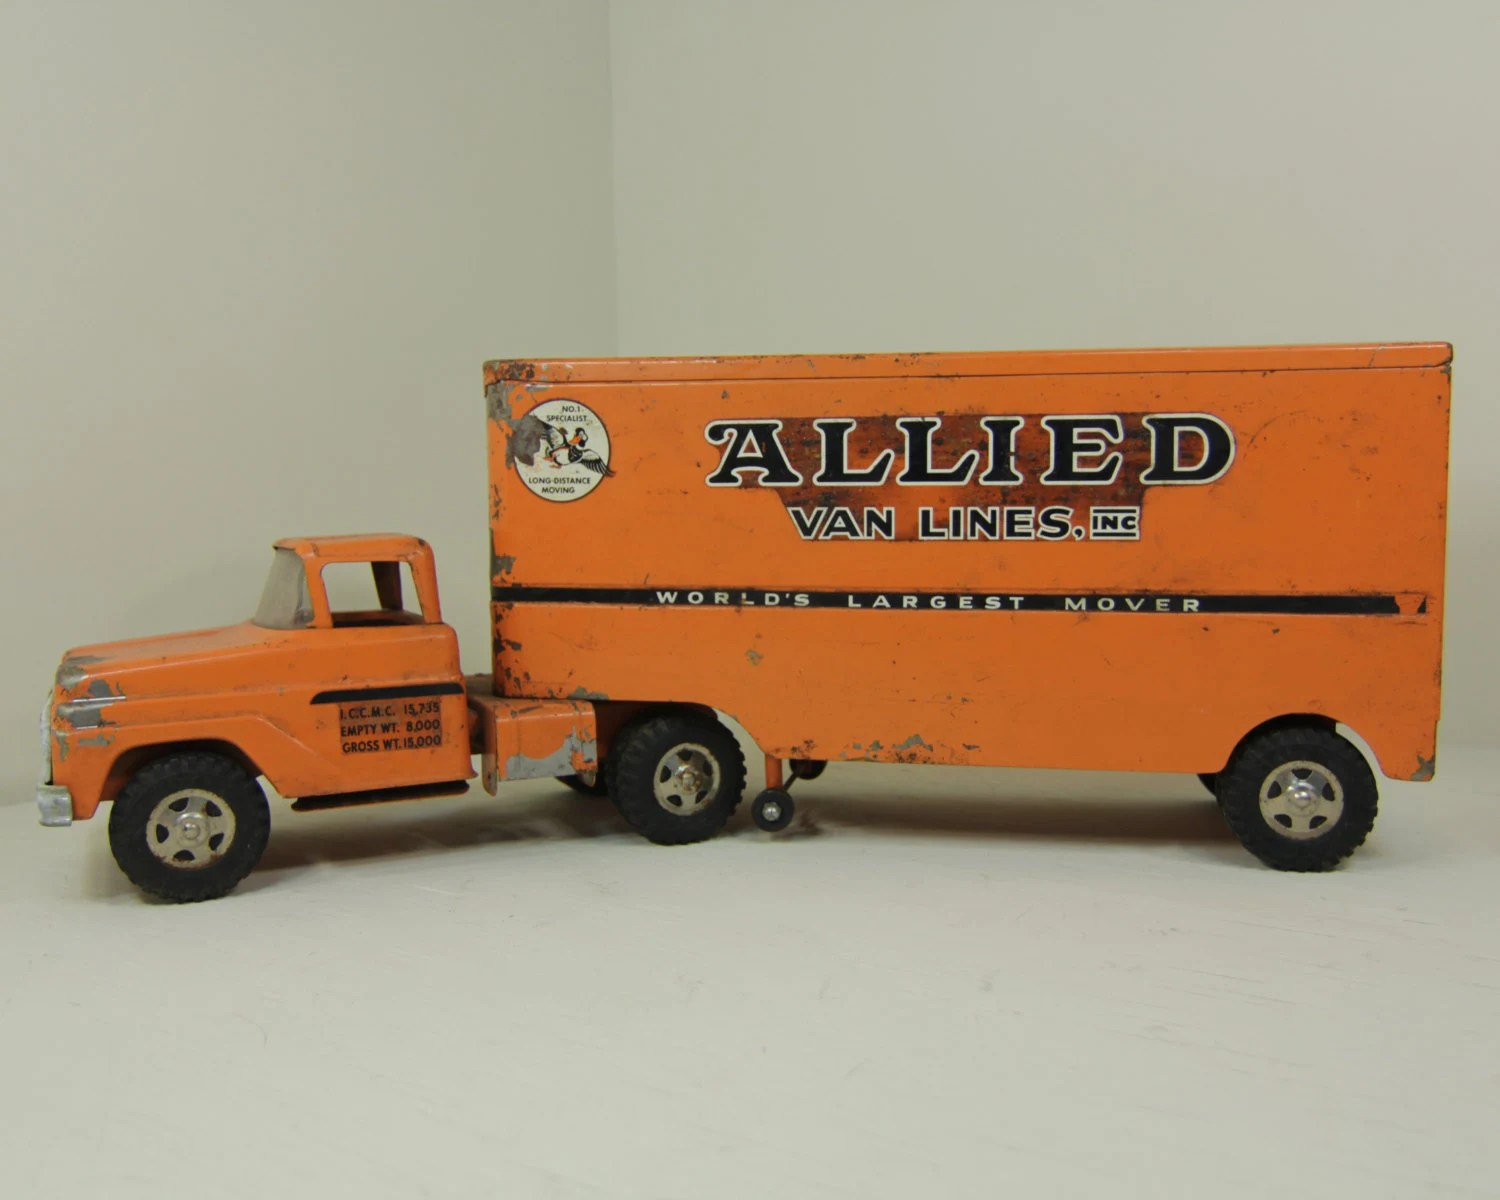 Toy Moving Truck Allied Van Lines Tonka Truck Toy Tractor Trailer Vintage Metal